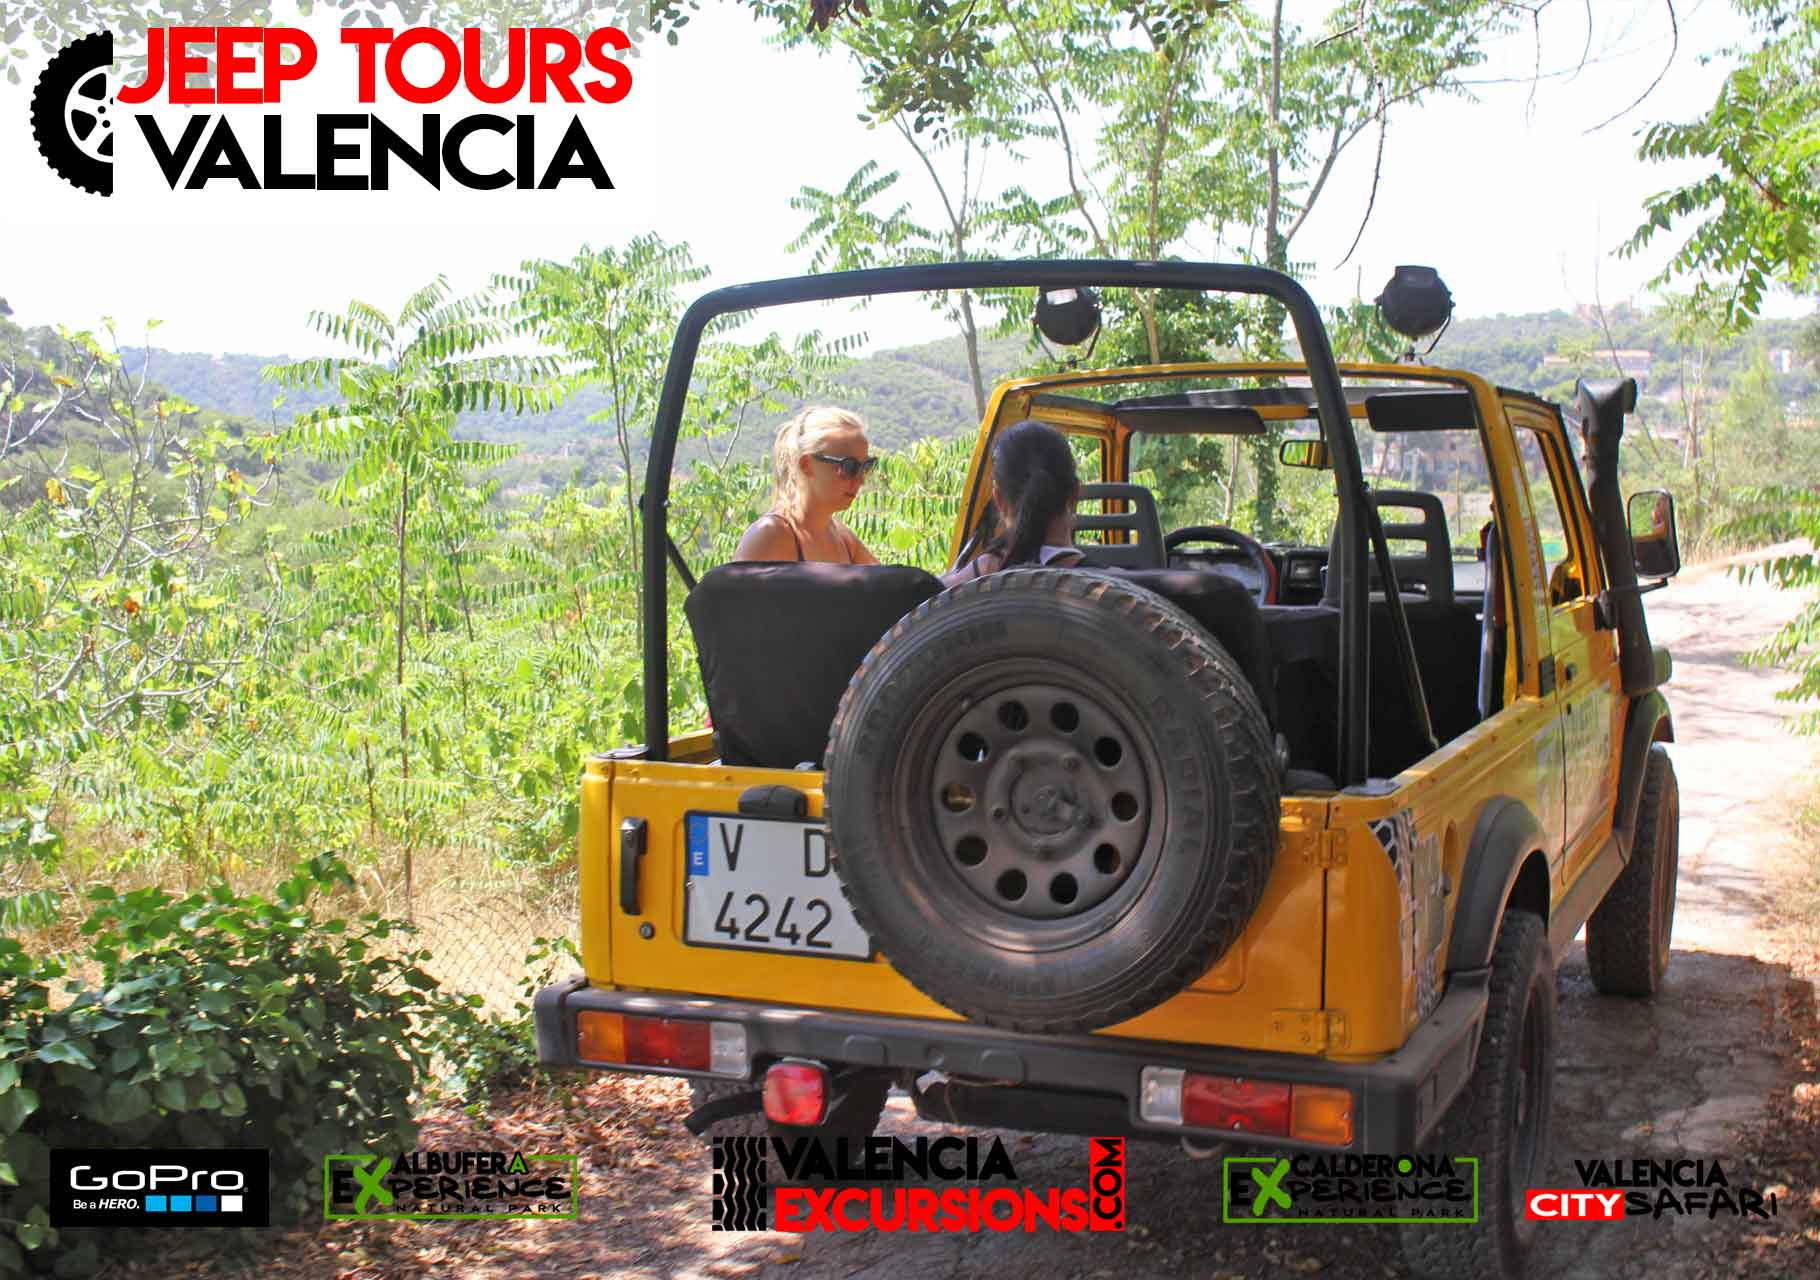 Valencia Excursions jeep tour